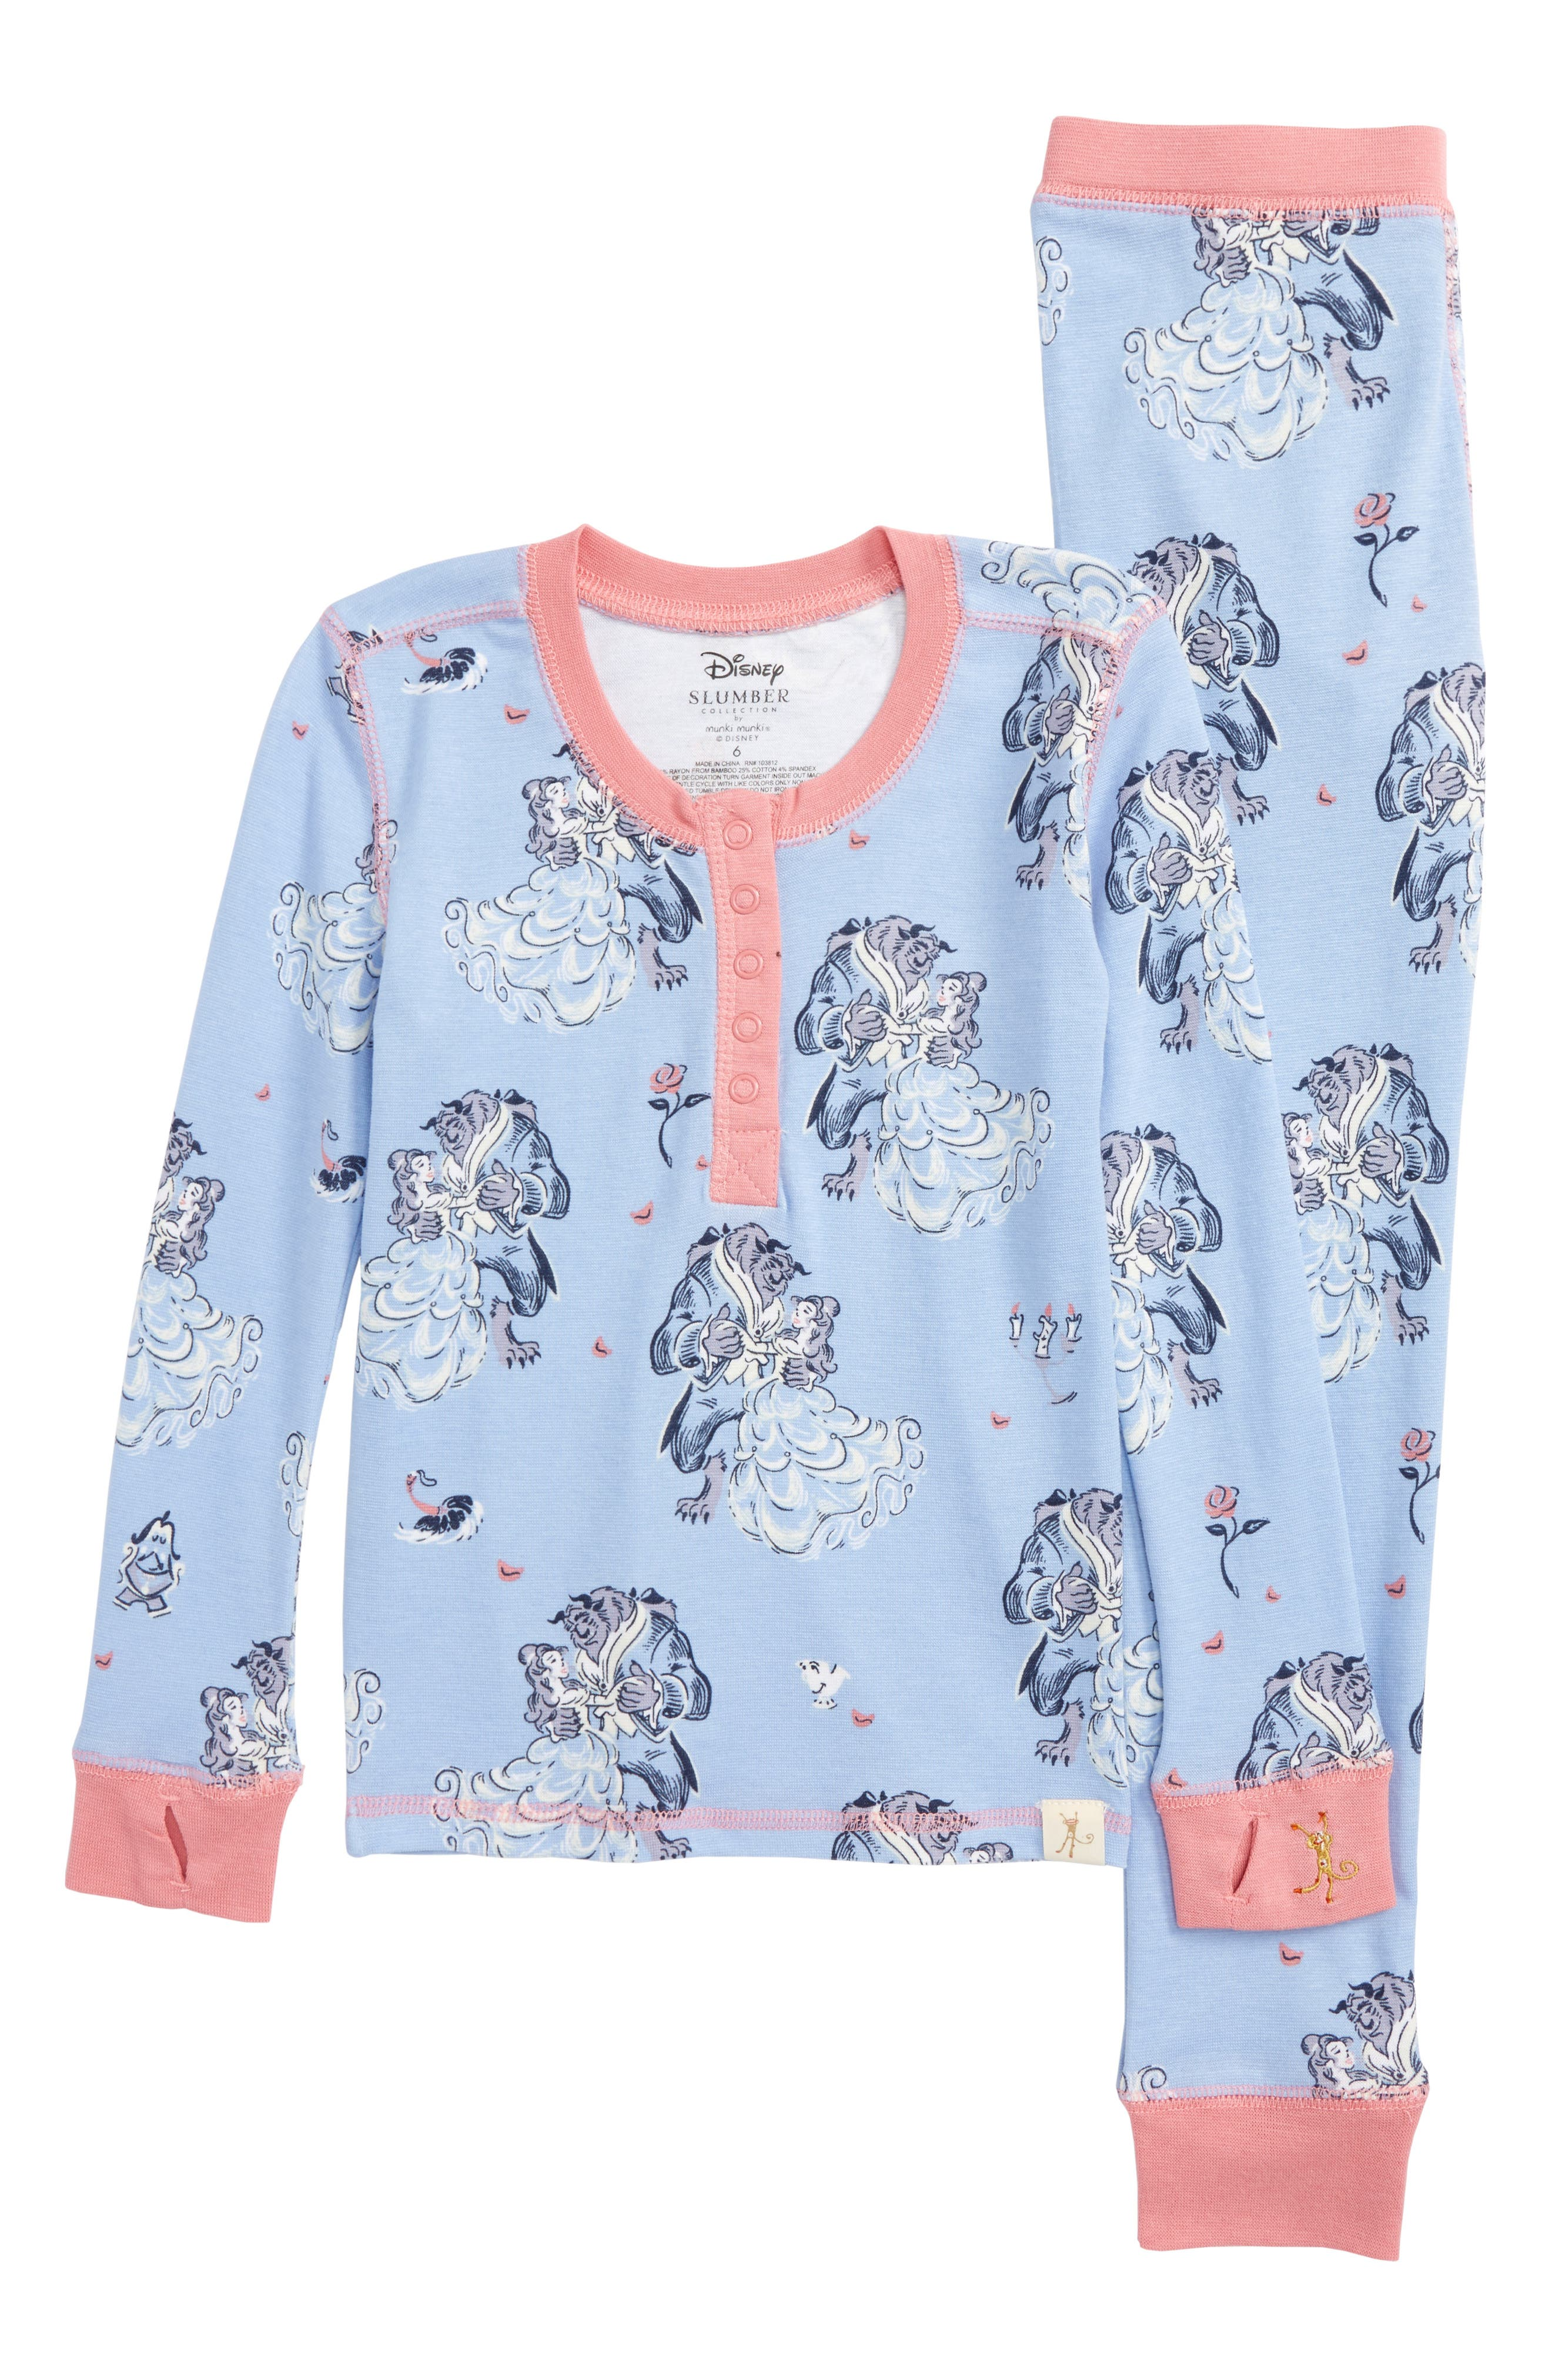 Disney – Beauty & The Beast Fitted Two-Piece Pajamas,                             Main thumbnail 1, color,